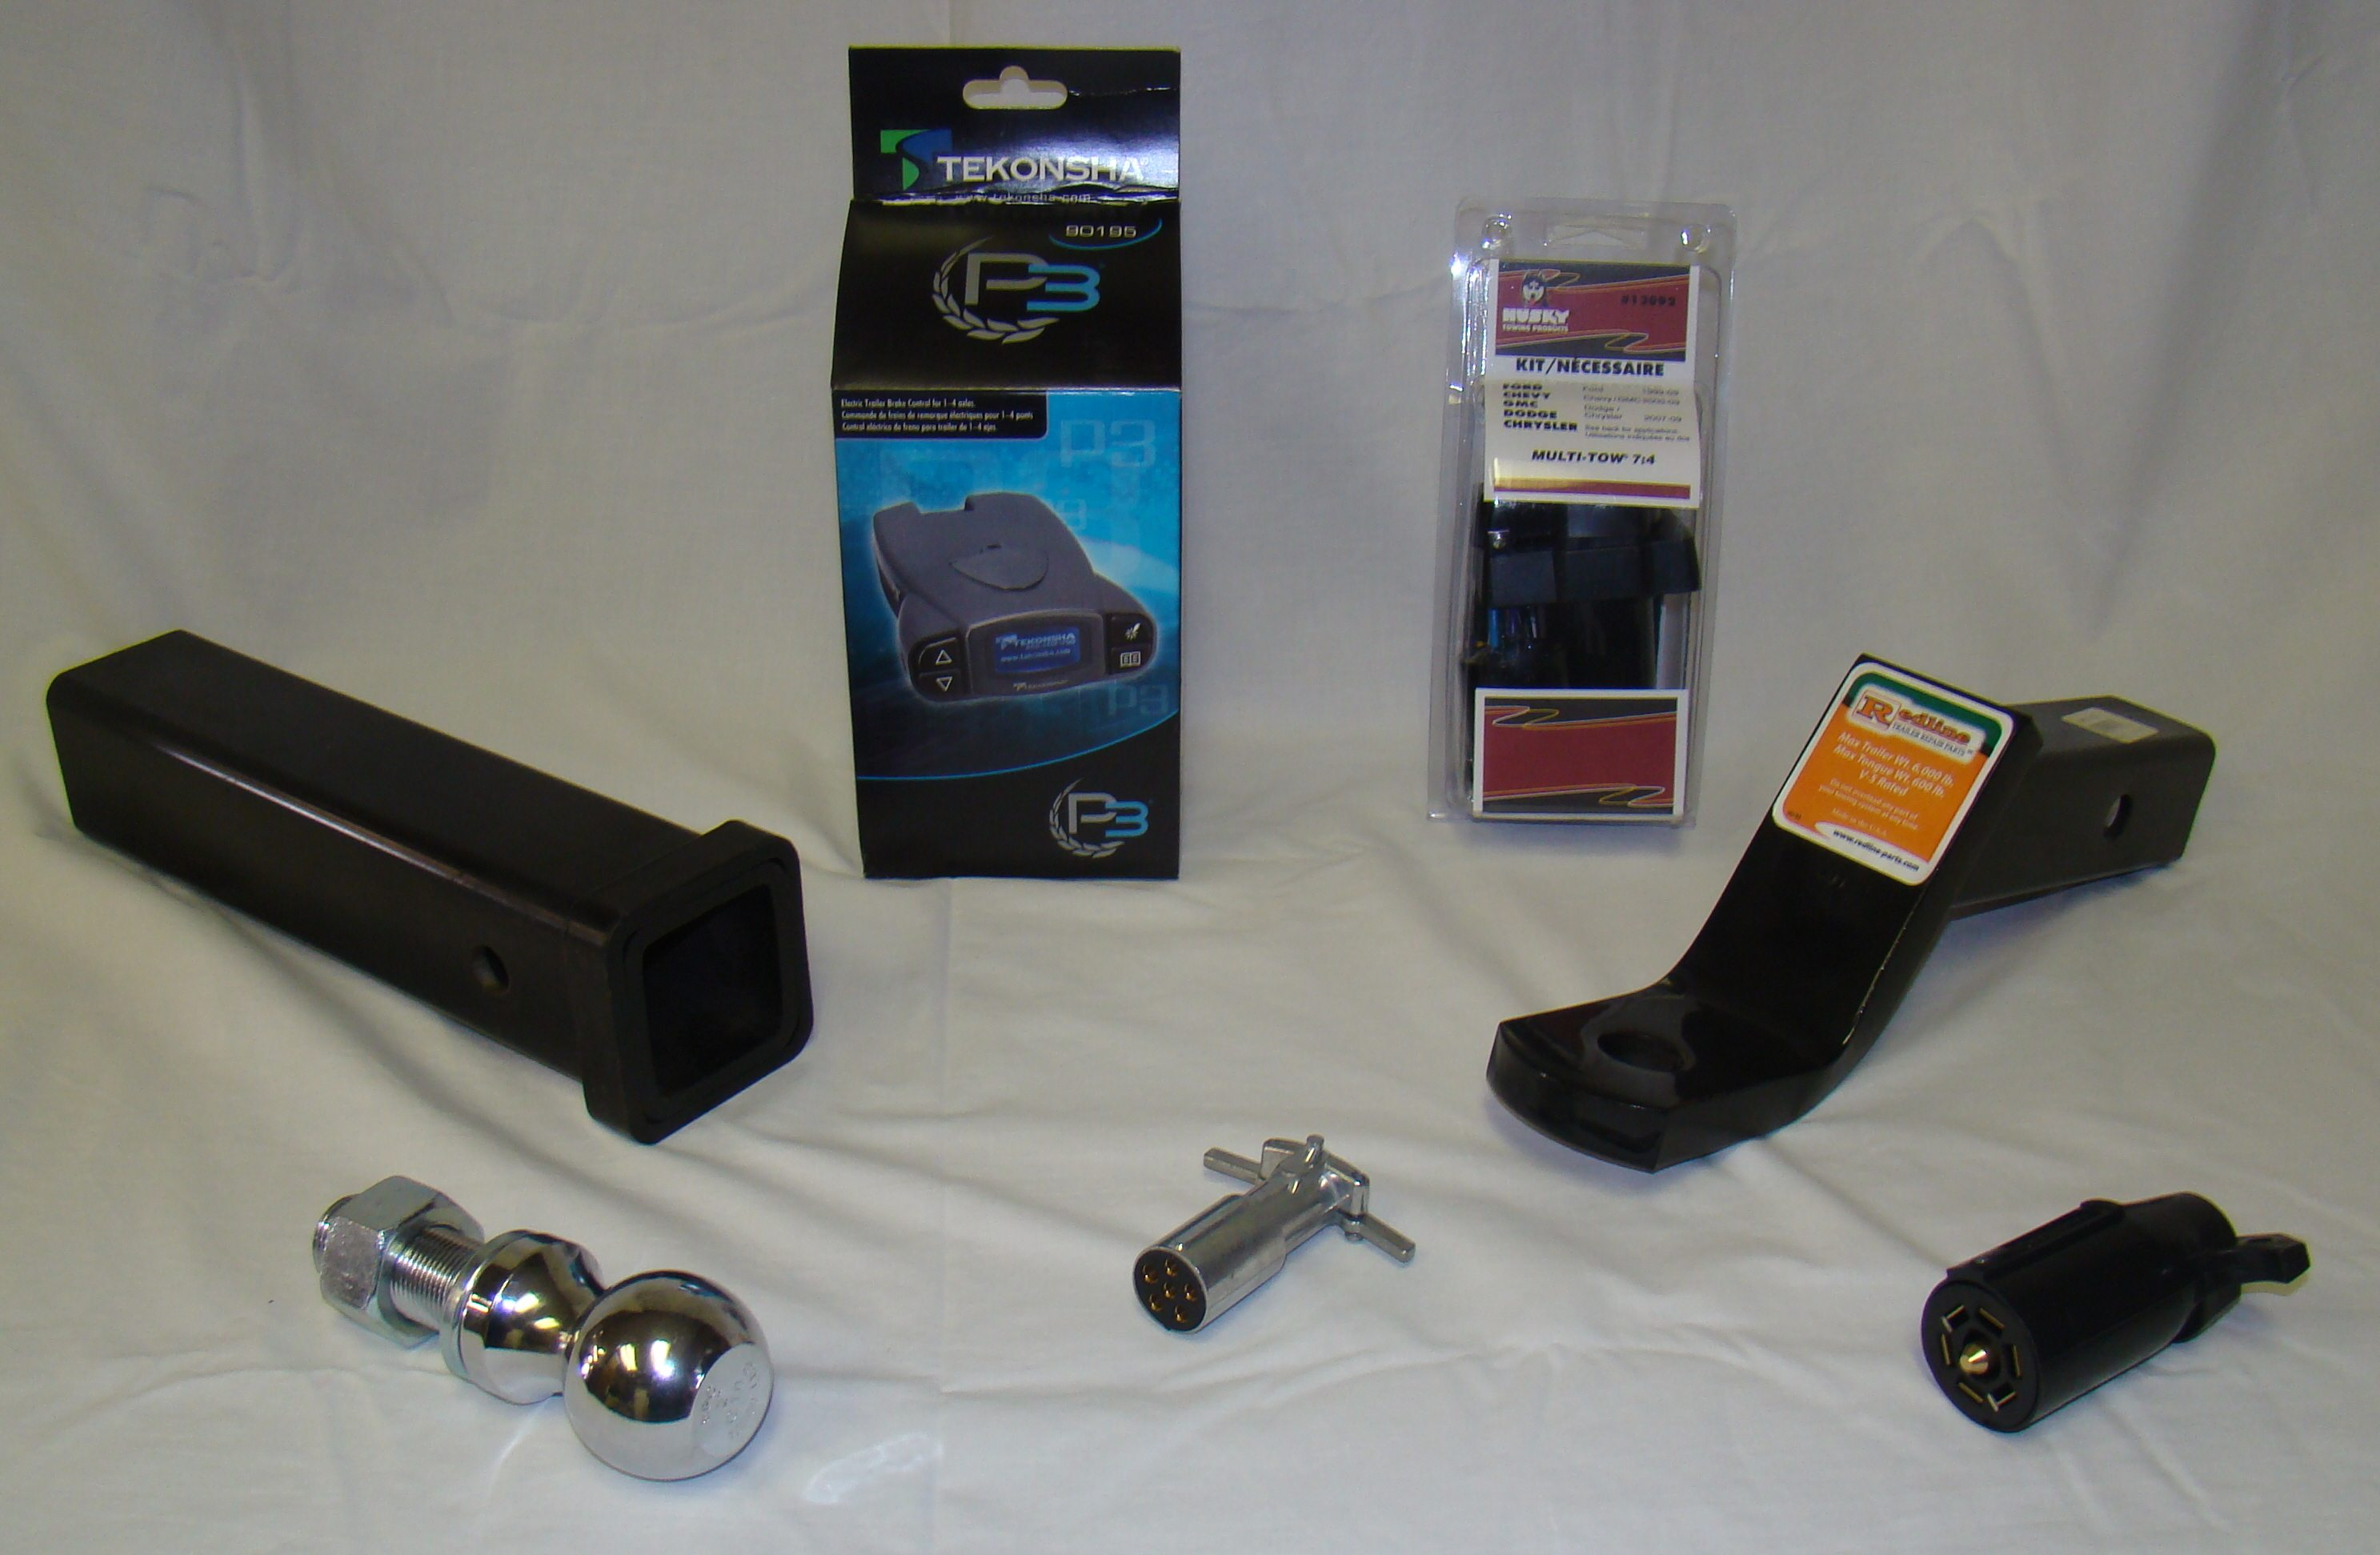 trailer parts product imagery